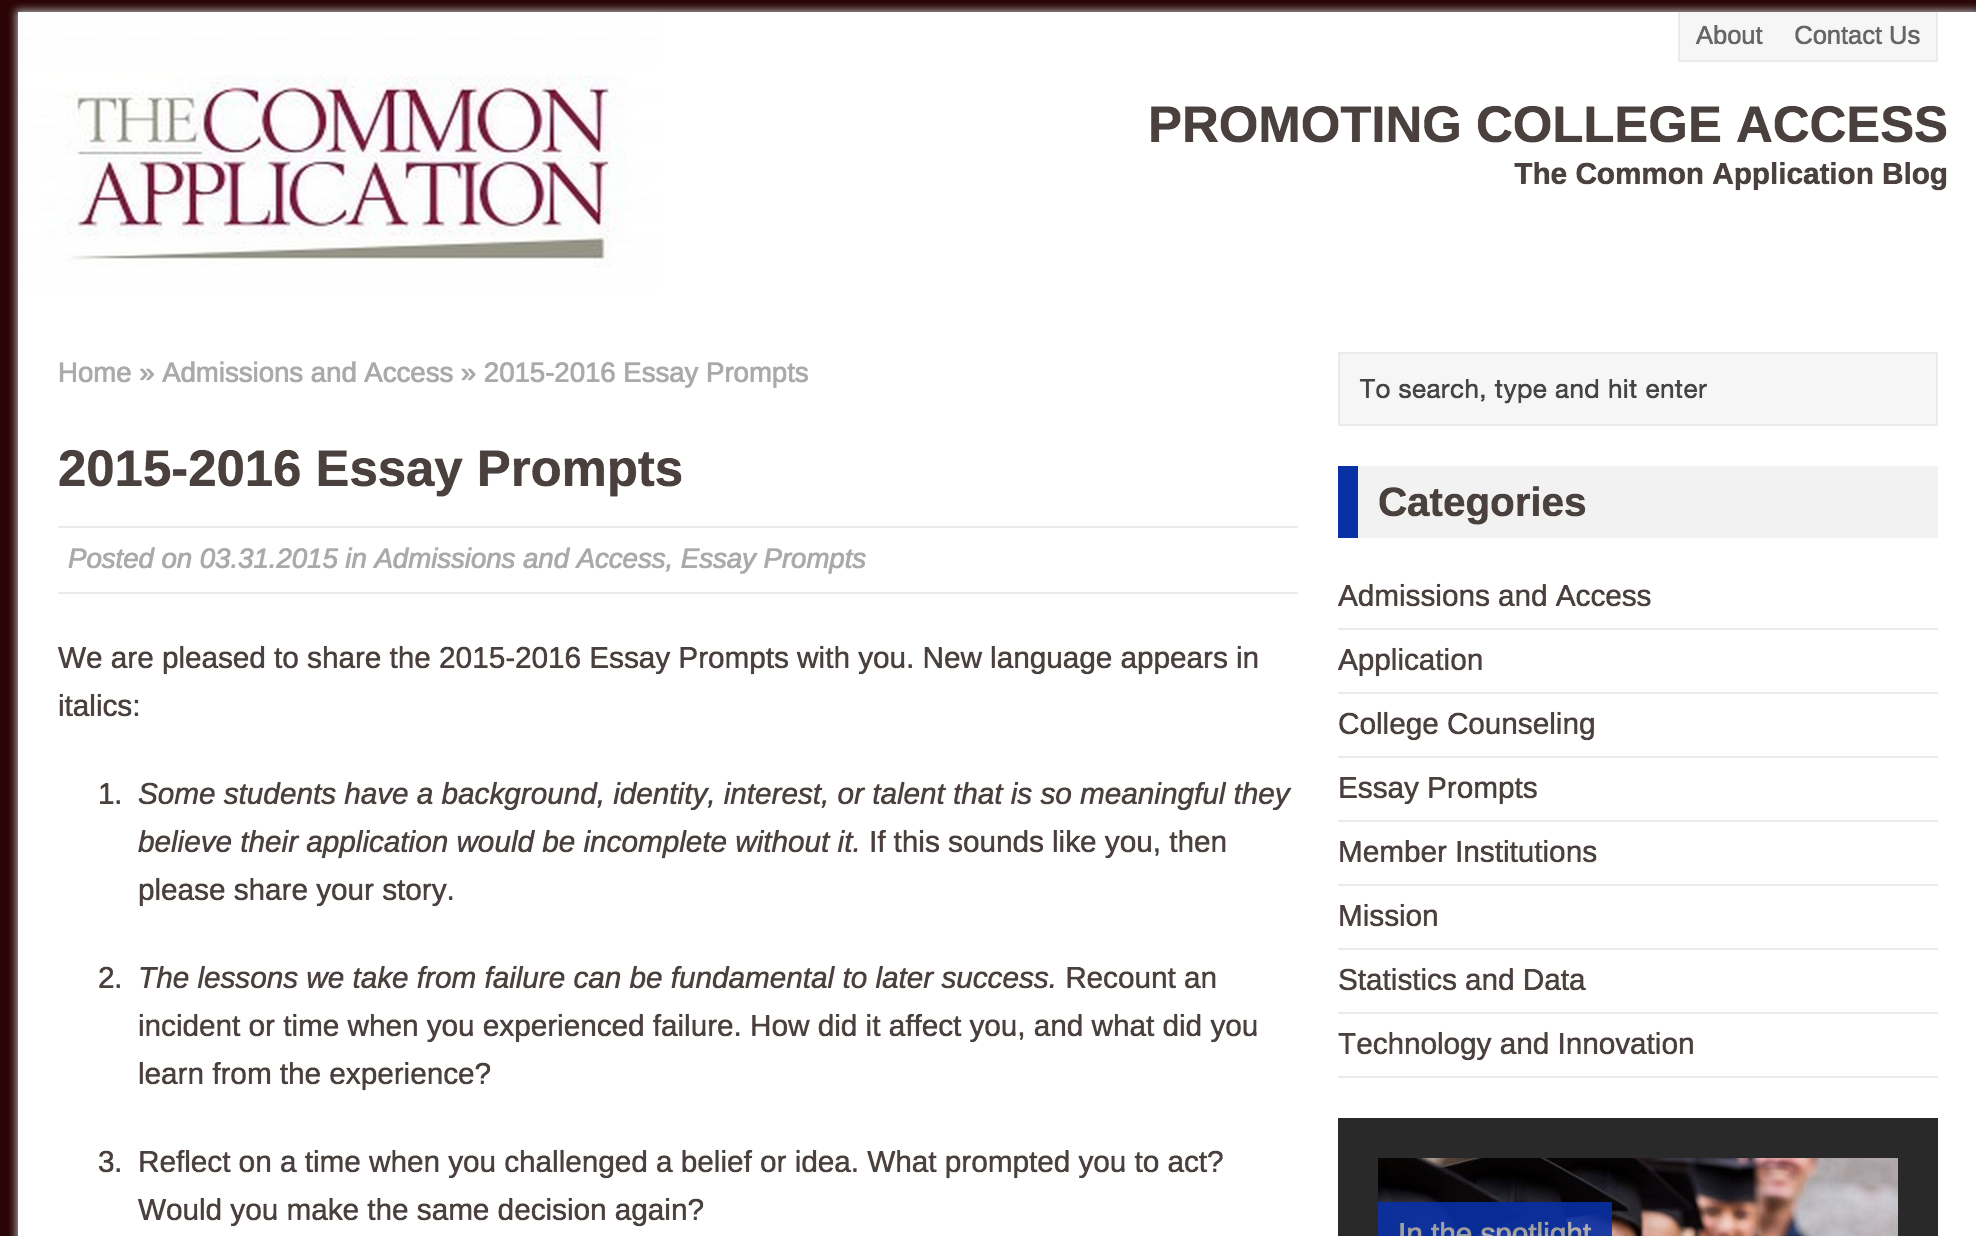 006 Screen Shot At Pm Essay Example Tufts Supplemental Top Essays Samples That Worked Full